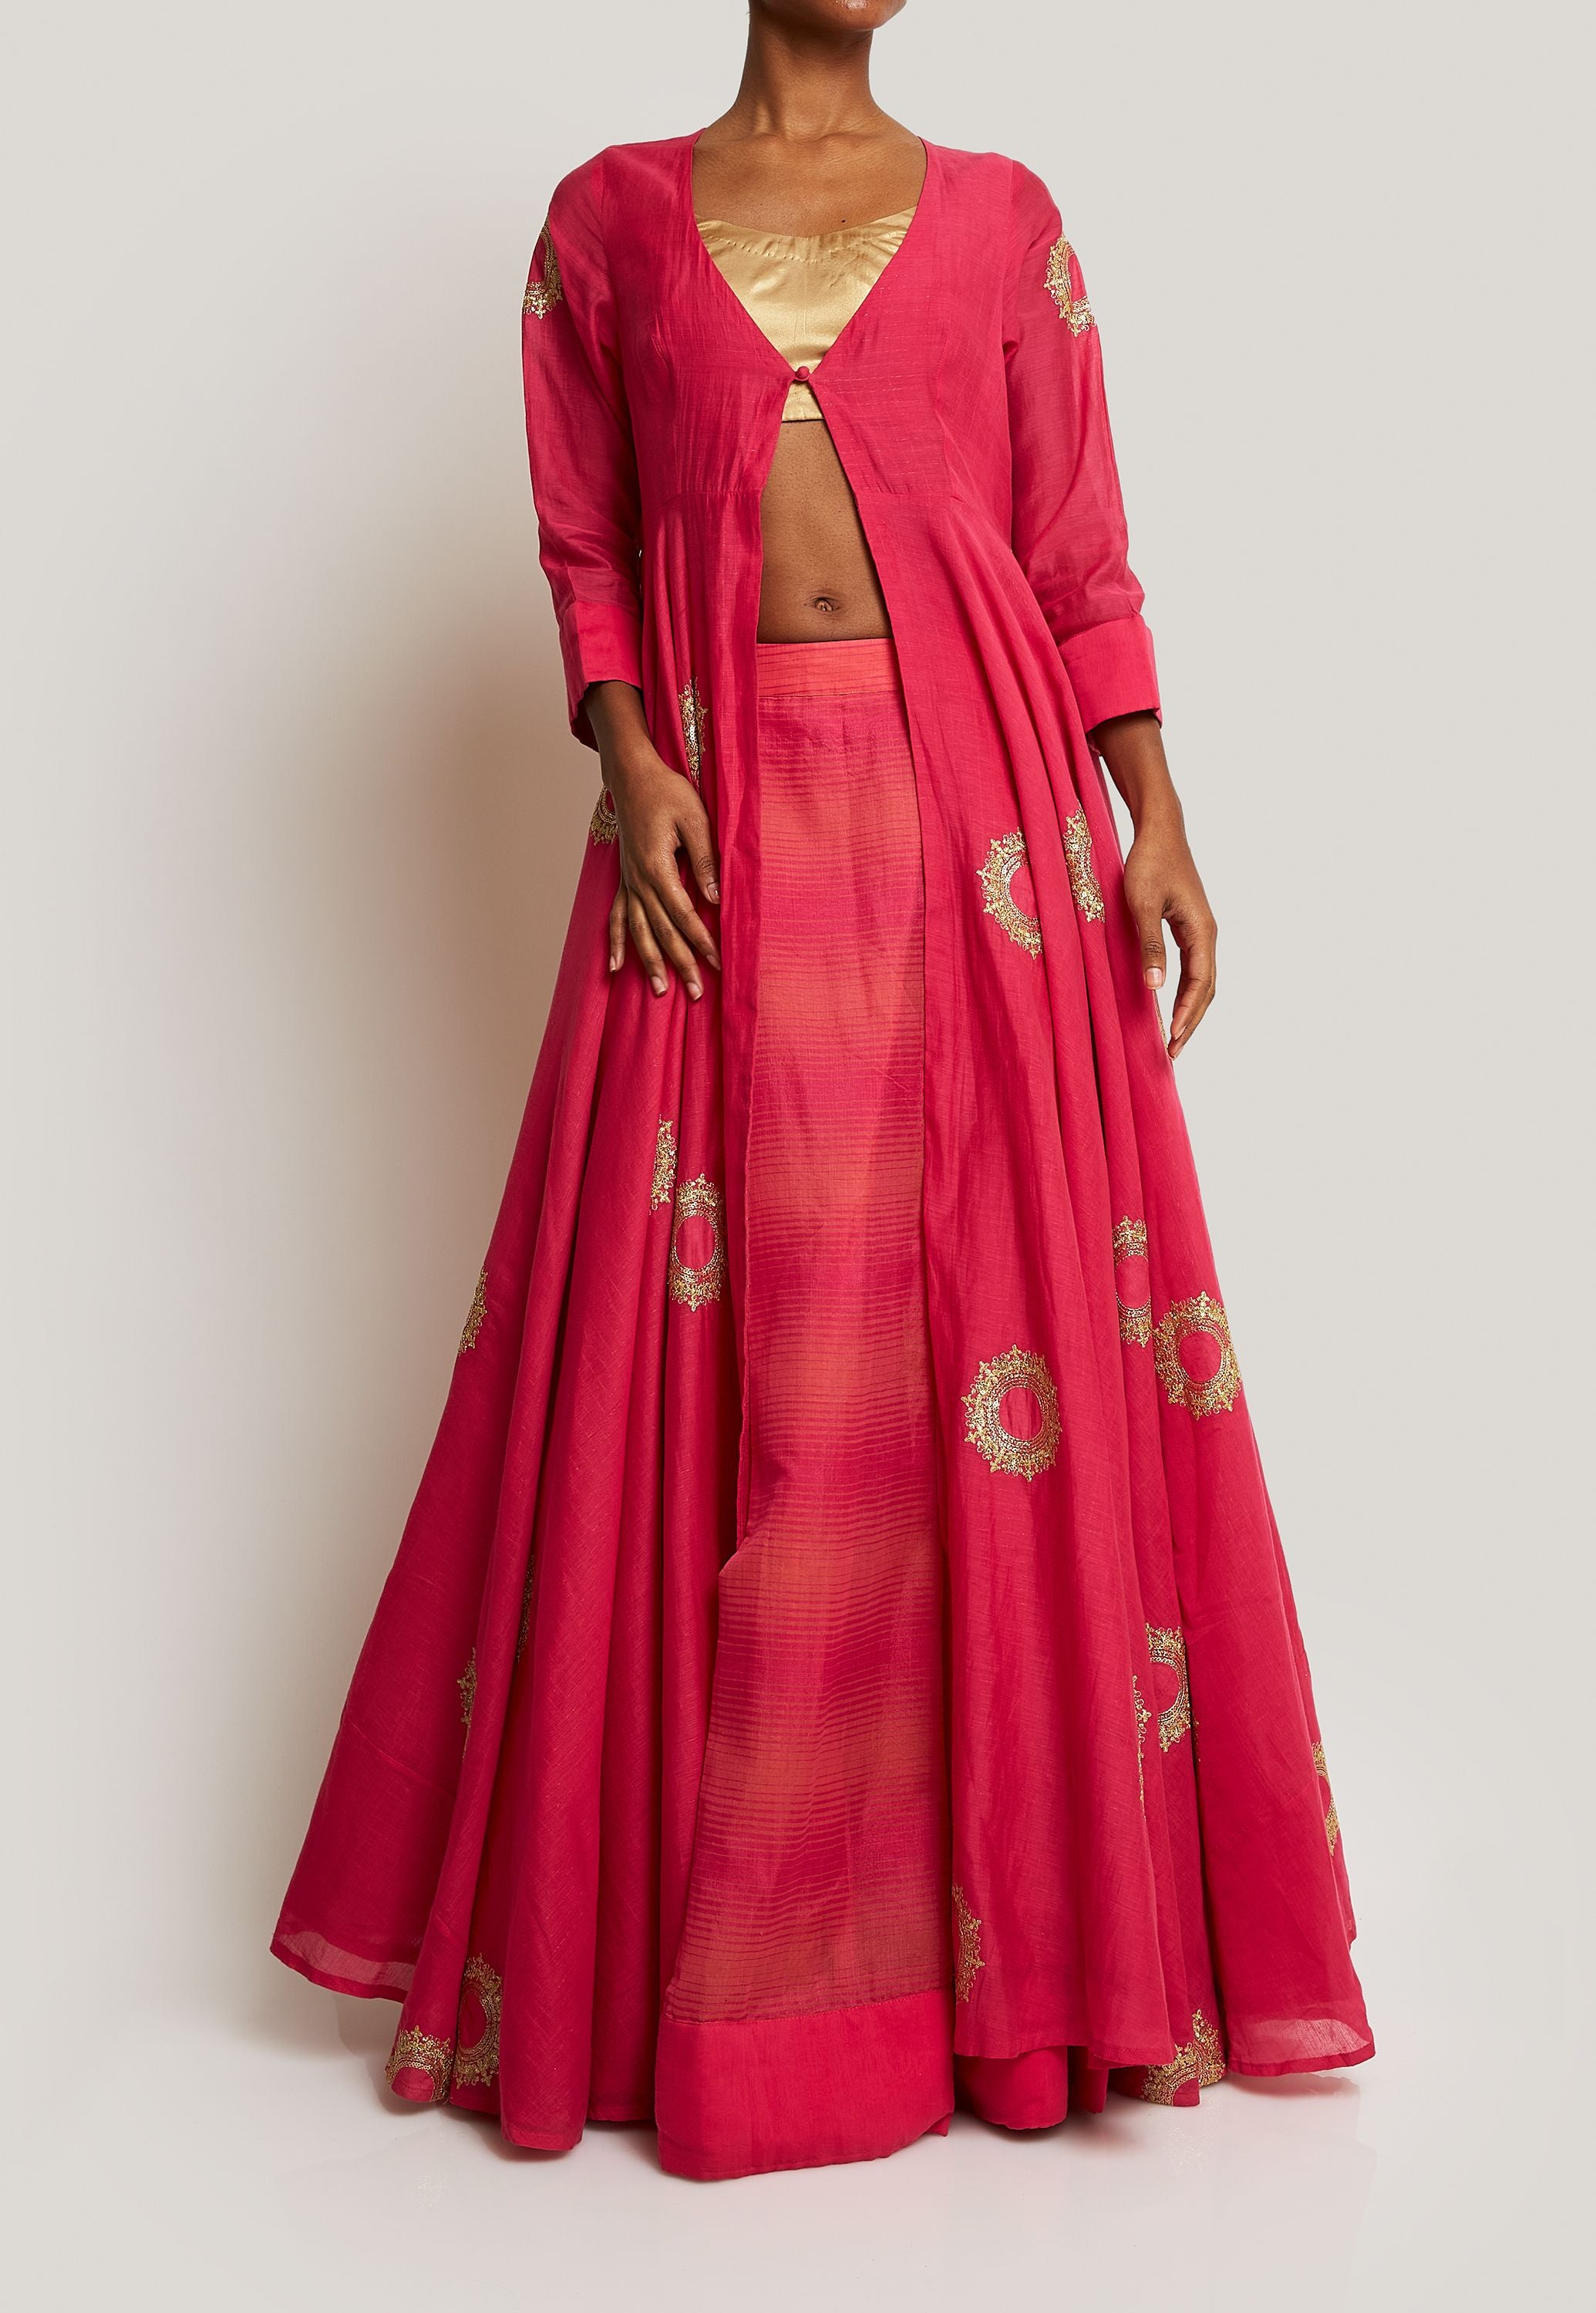 LONG A-LINE JACKET WITH FRONT CLOSURE, GOLD BLOUSE AND A FLOWY LEHENGA